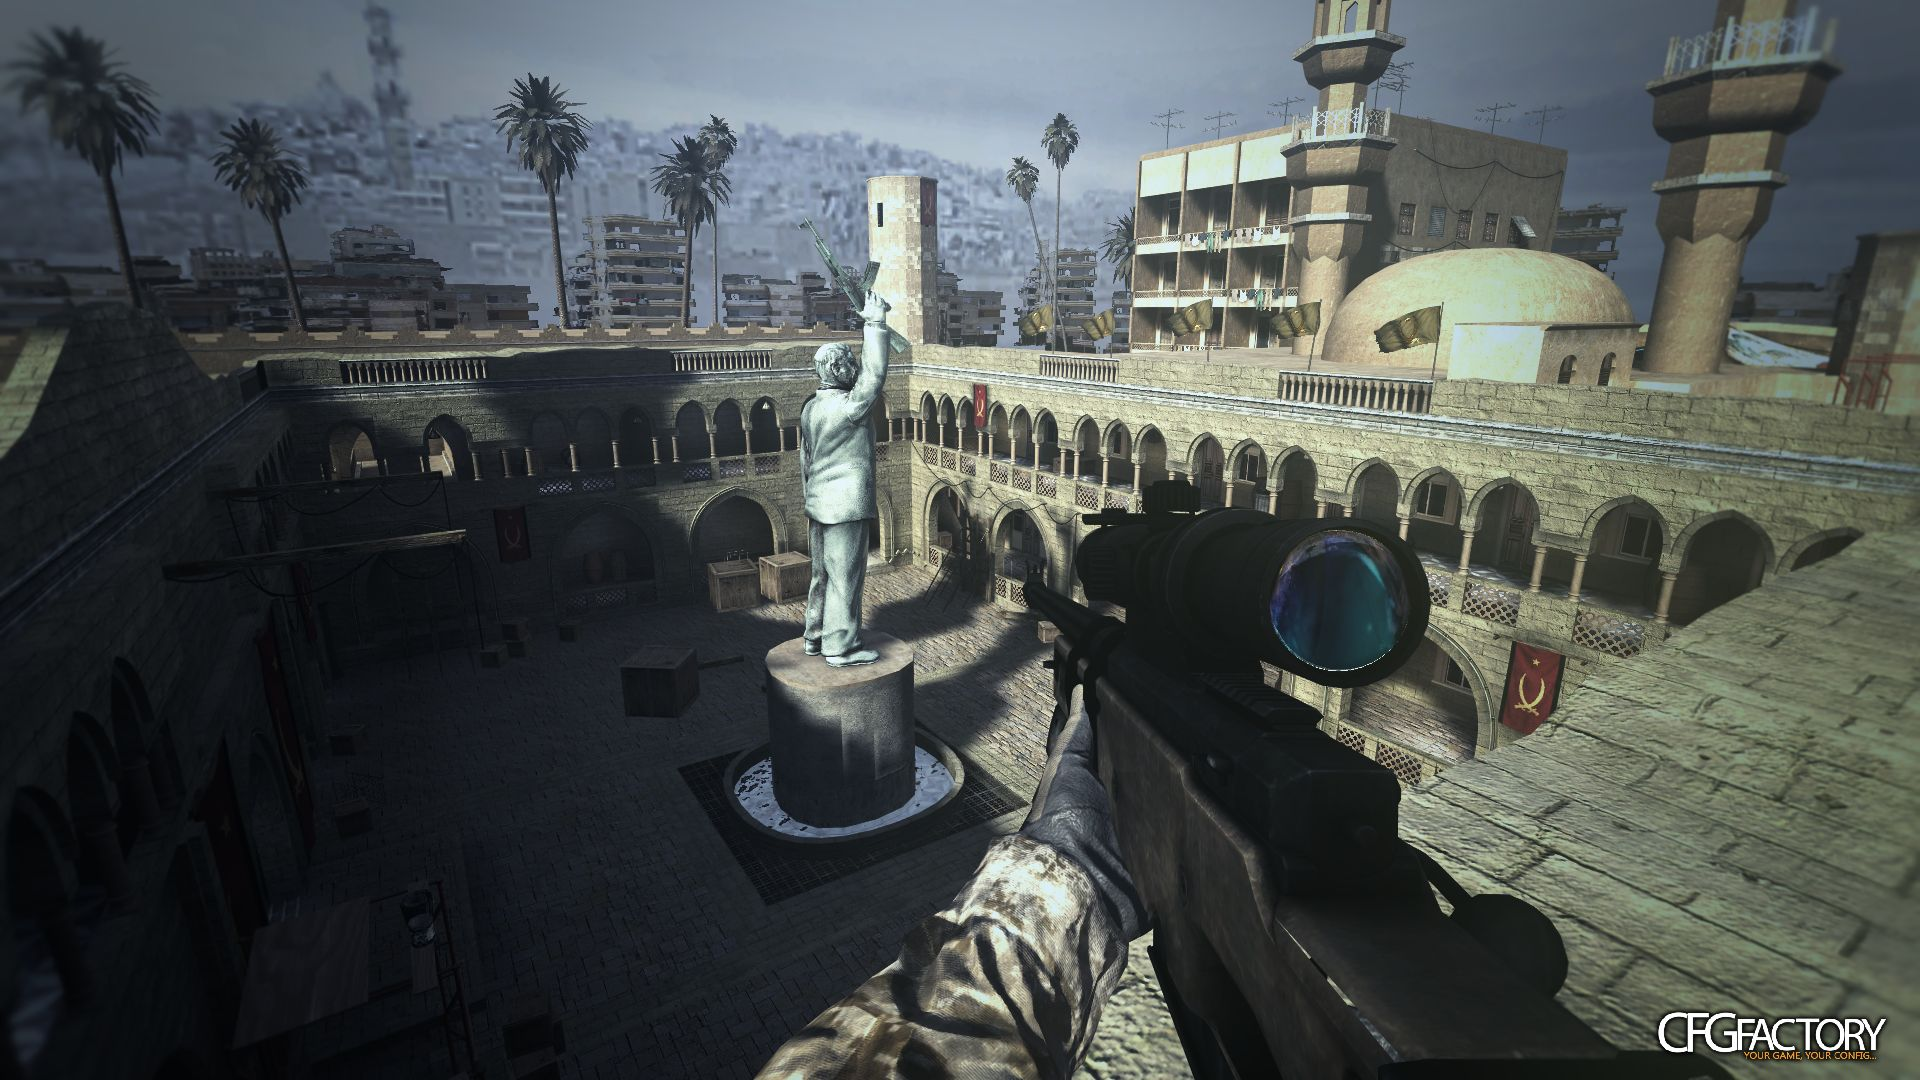 cod4, custom models, battlefield 3 l96, 3agl3